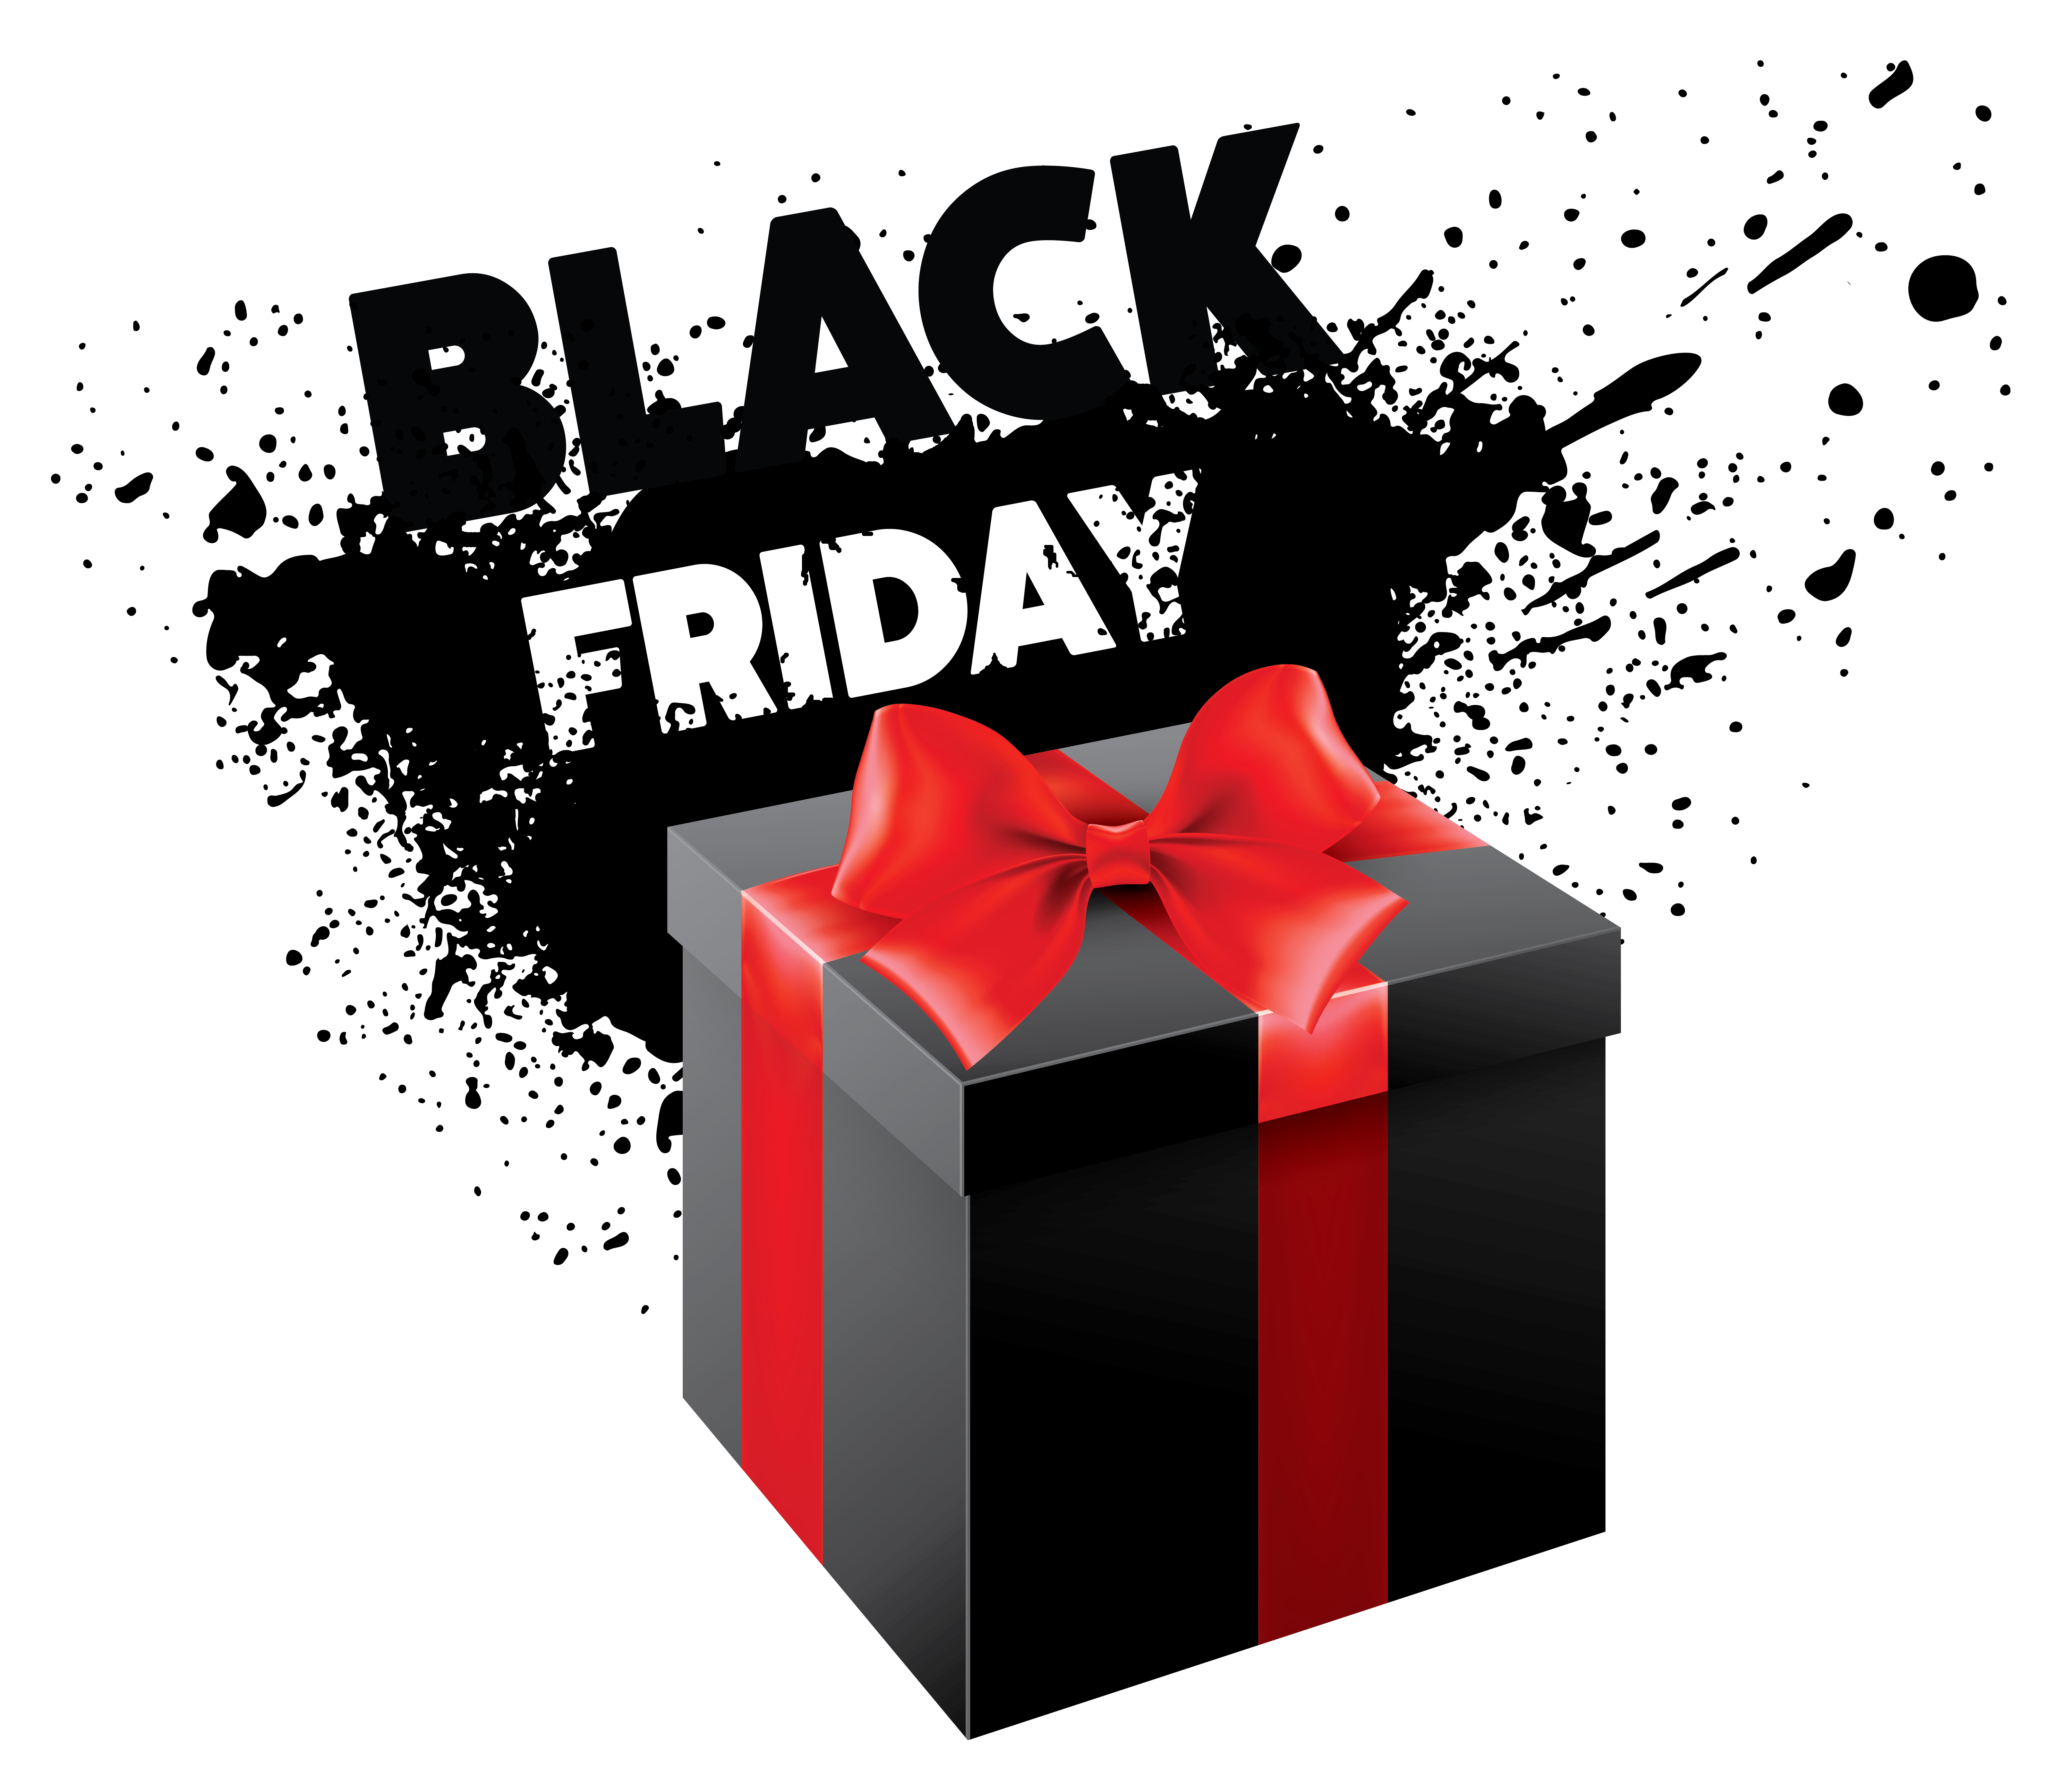 Black friday clip art clipart free download.